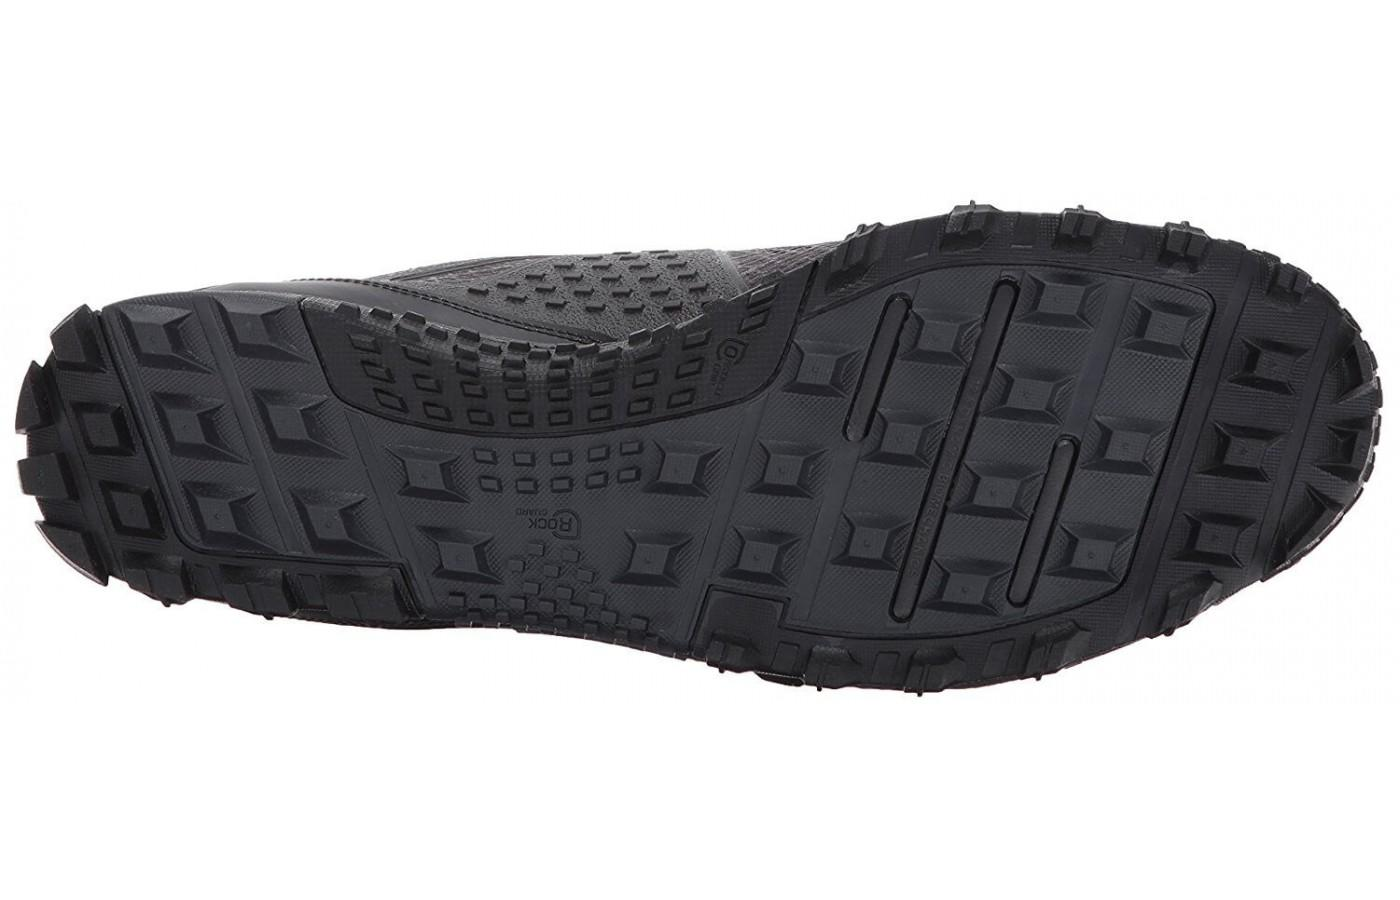 The underfoot is designed using an aggressive lug system.